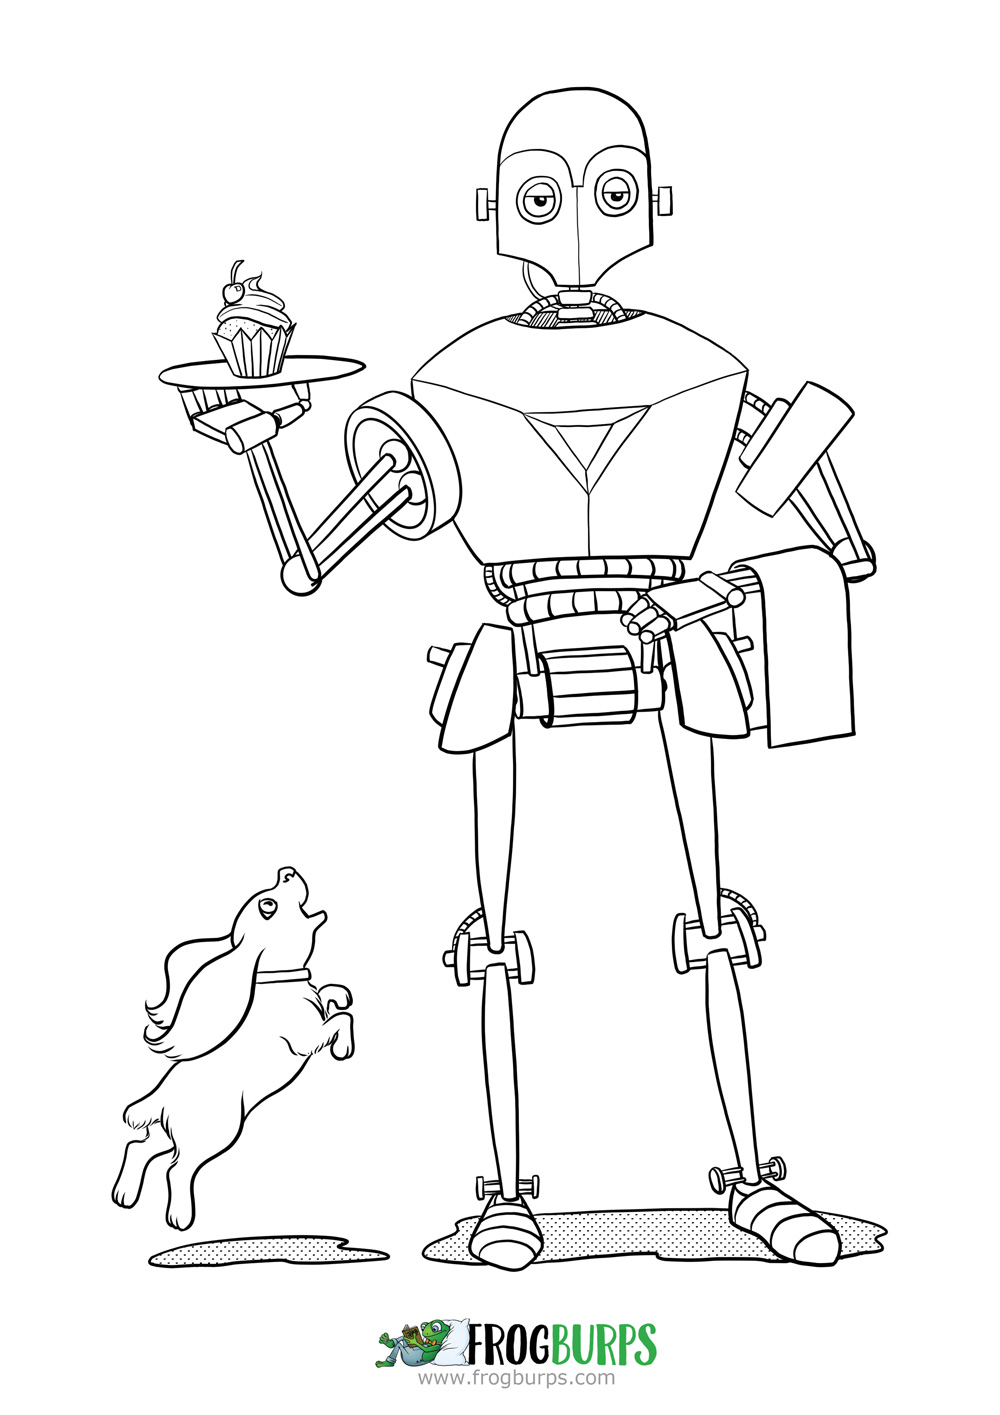 Cupcake Robot by Frogburps | Coloring Page